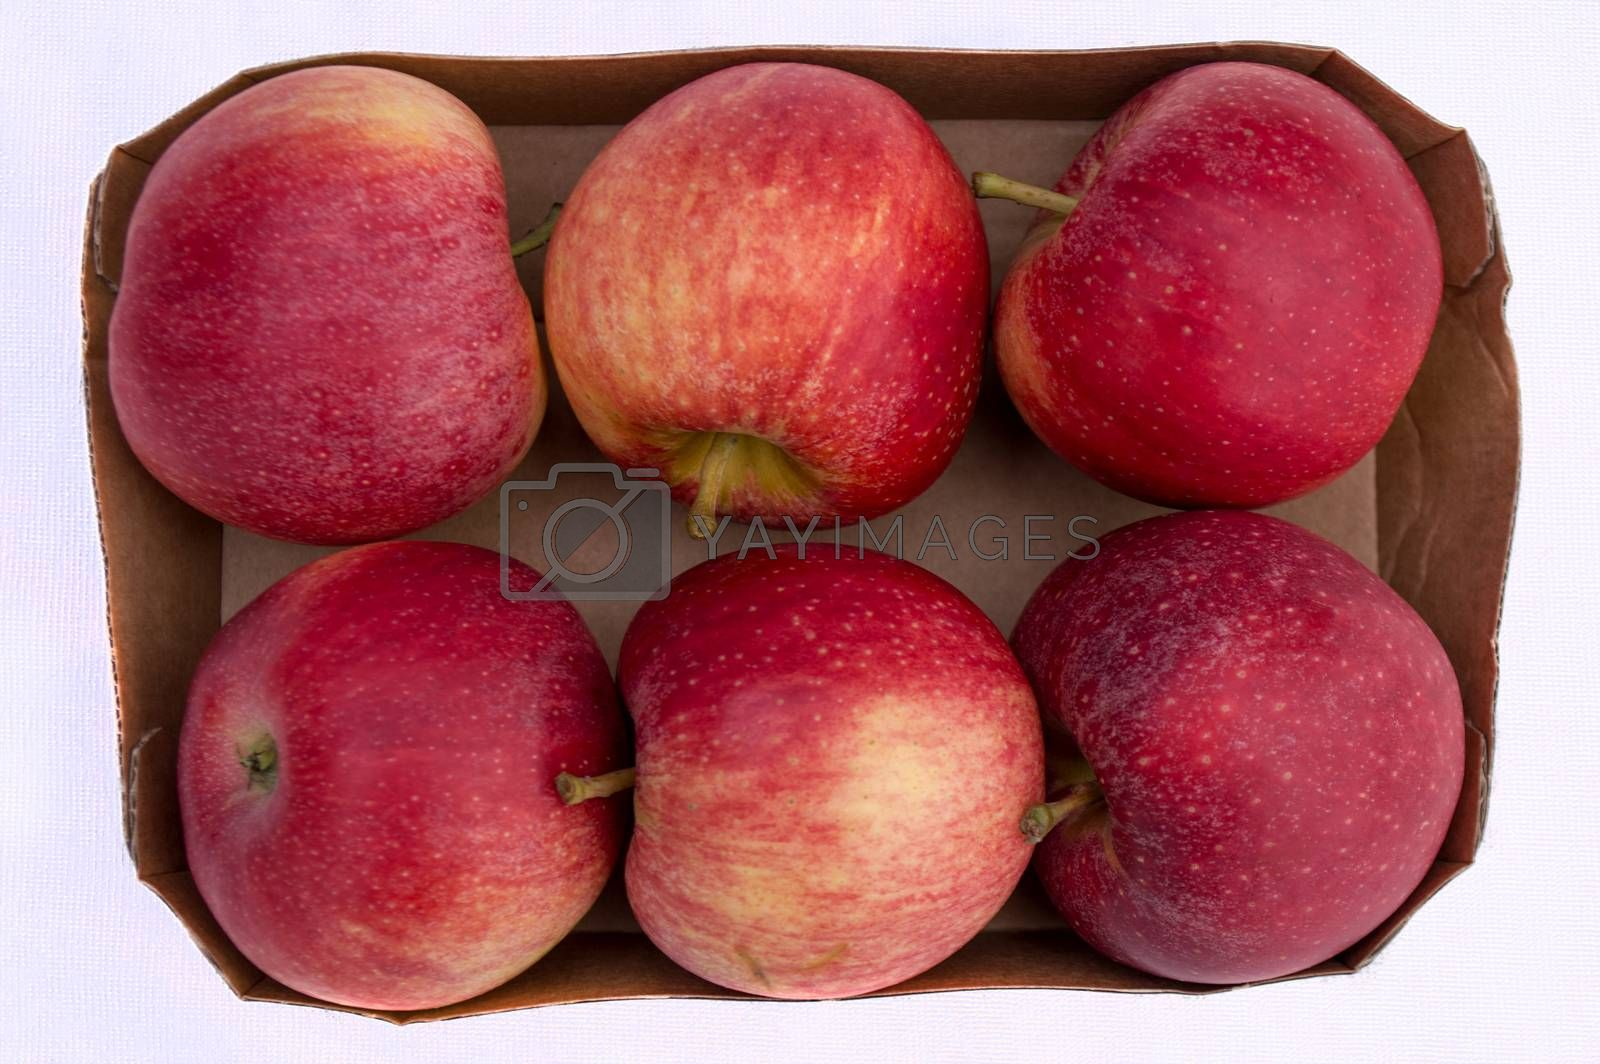 Cardboard box with six red fresh organic apples from supermarket on white background.